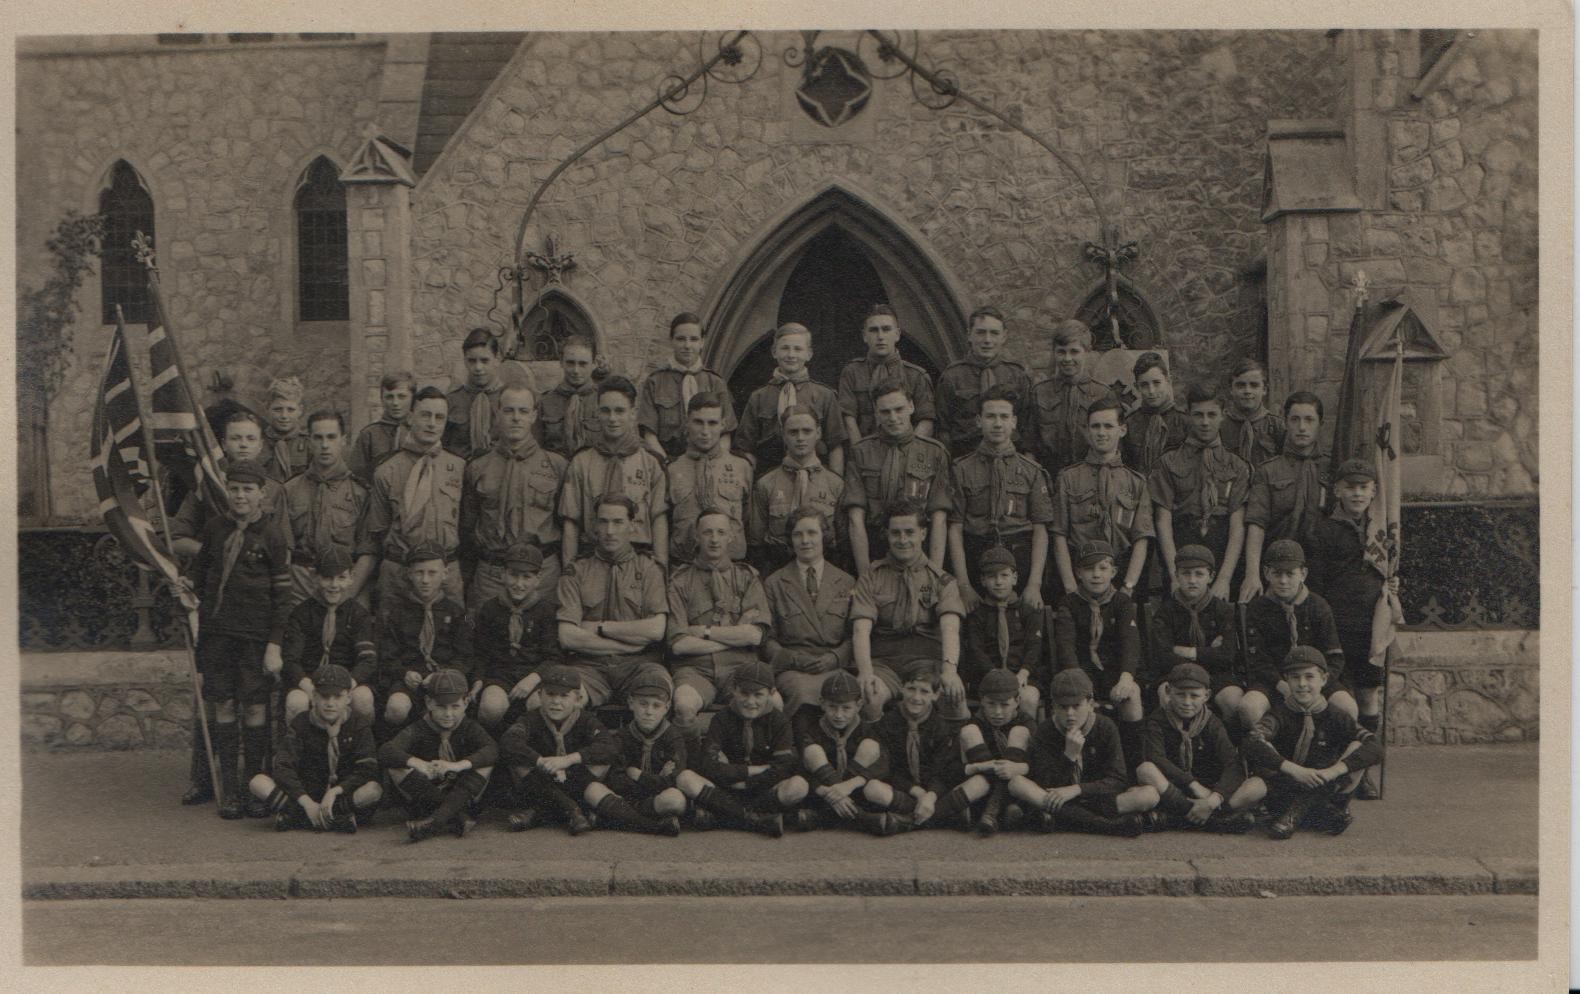 circa 1930: Cliftown Congregational Church, Southend-on-Sea: cubs and scouts. David second from left, second row